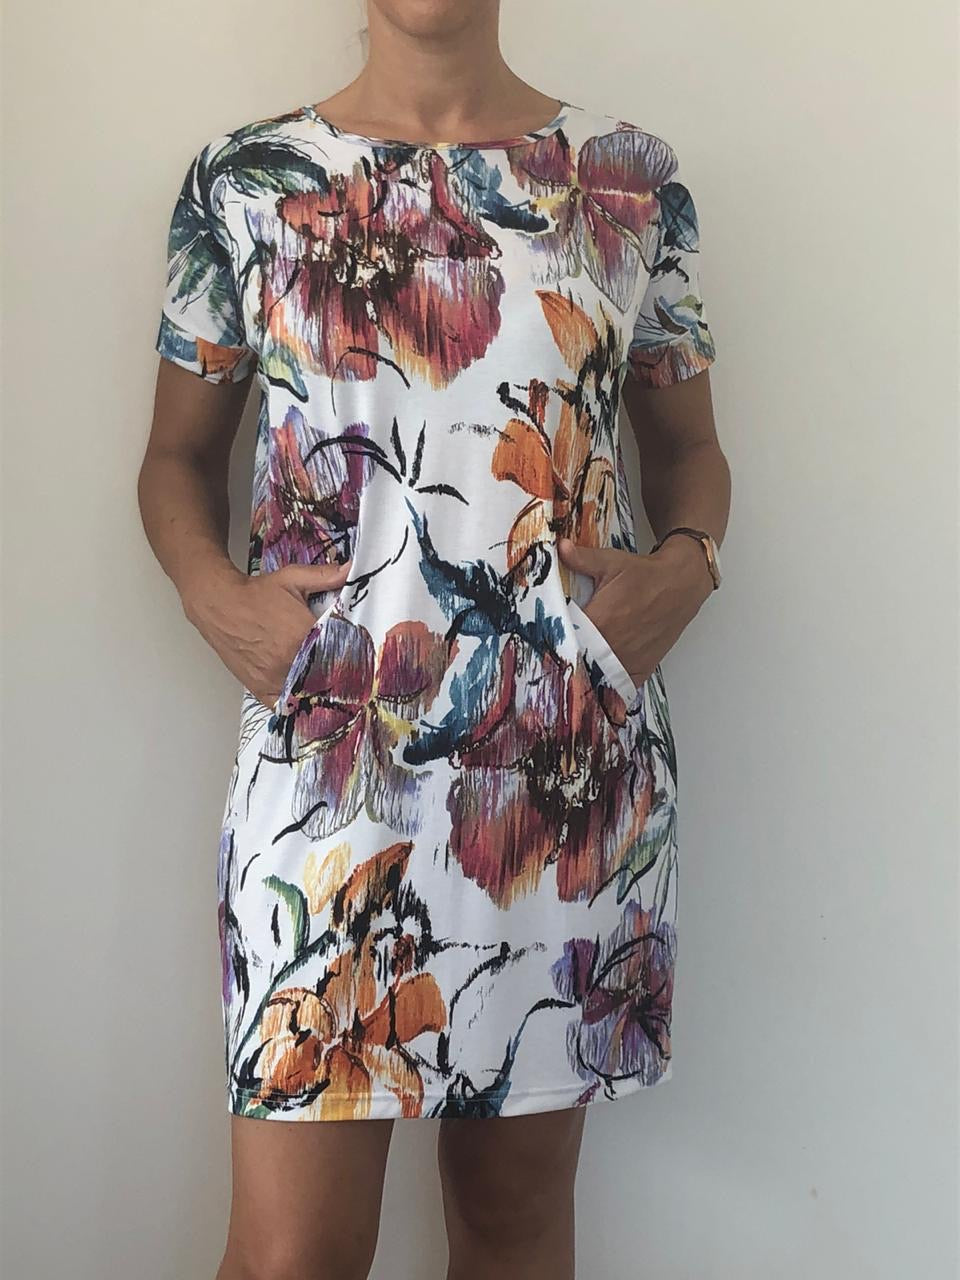 Freda and Dick Asla tunic dress - Abstract floral